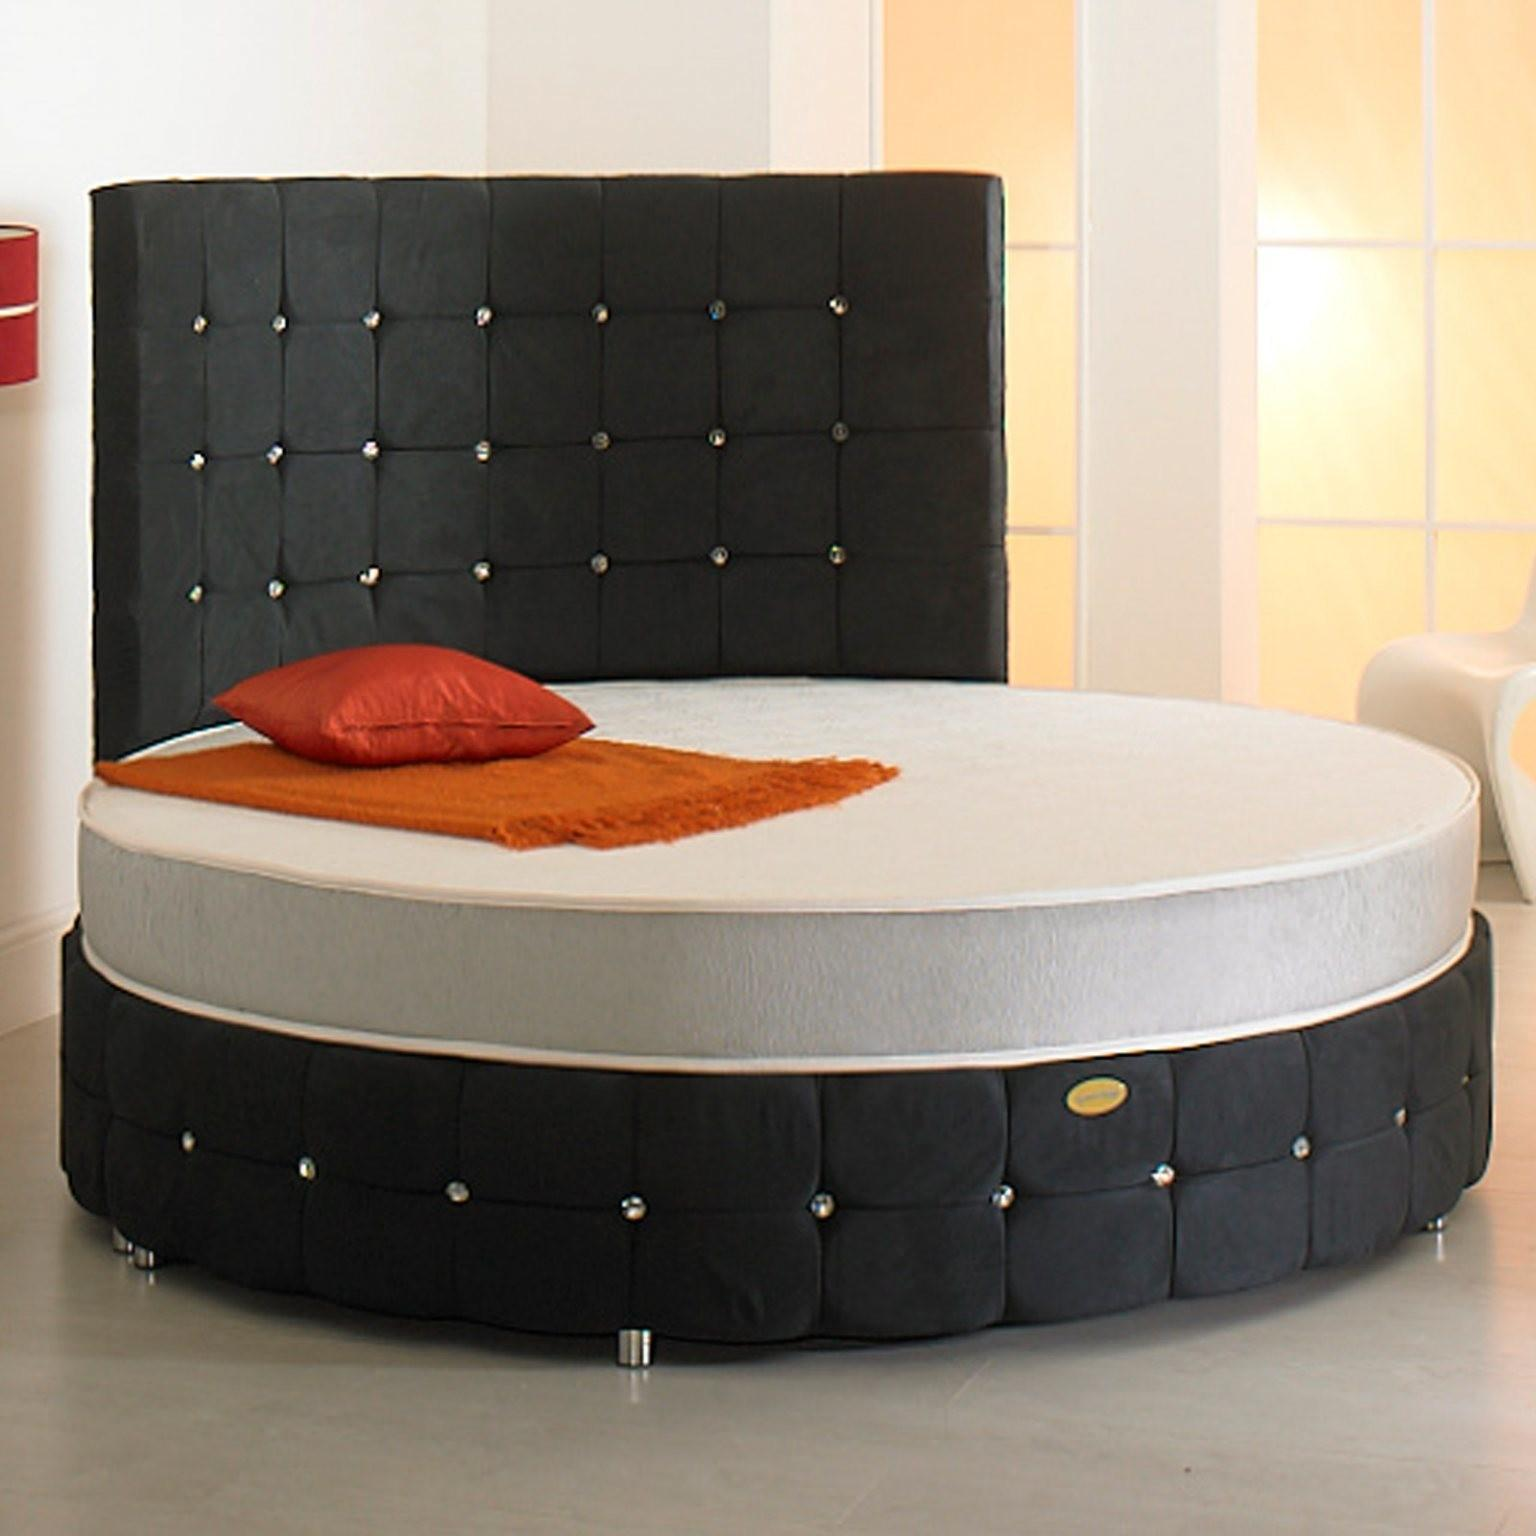 Amazing Round Beds Sale Cheap Room Decorating